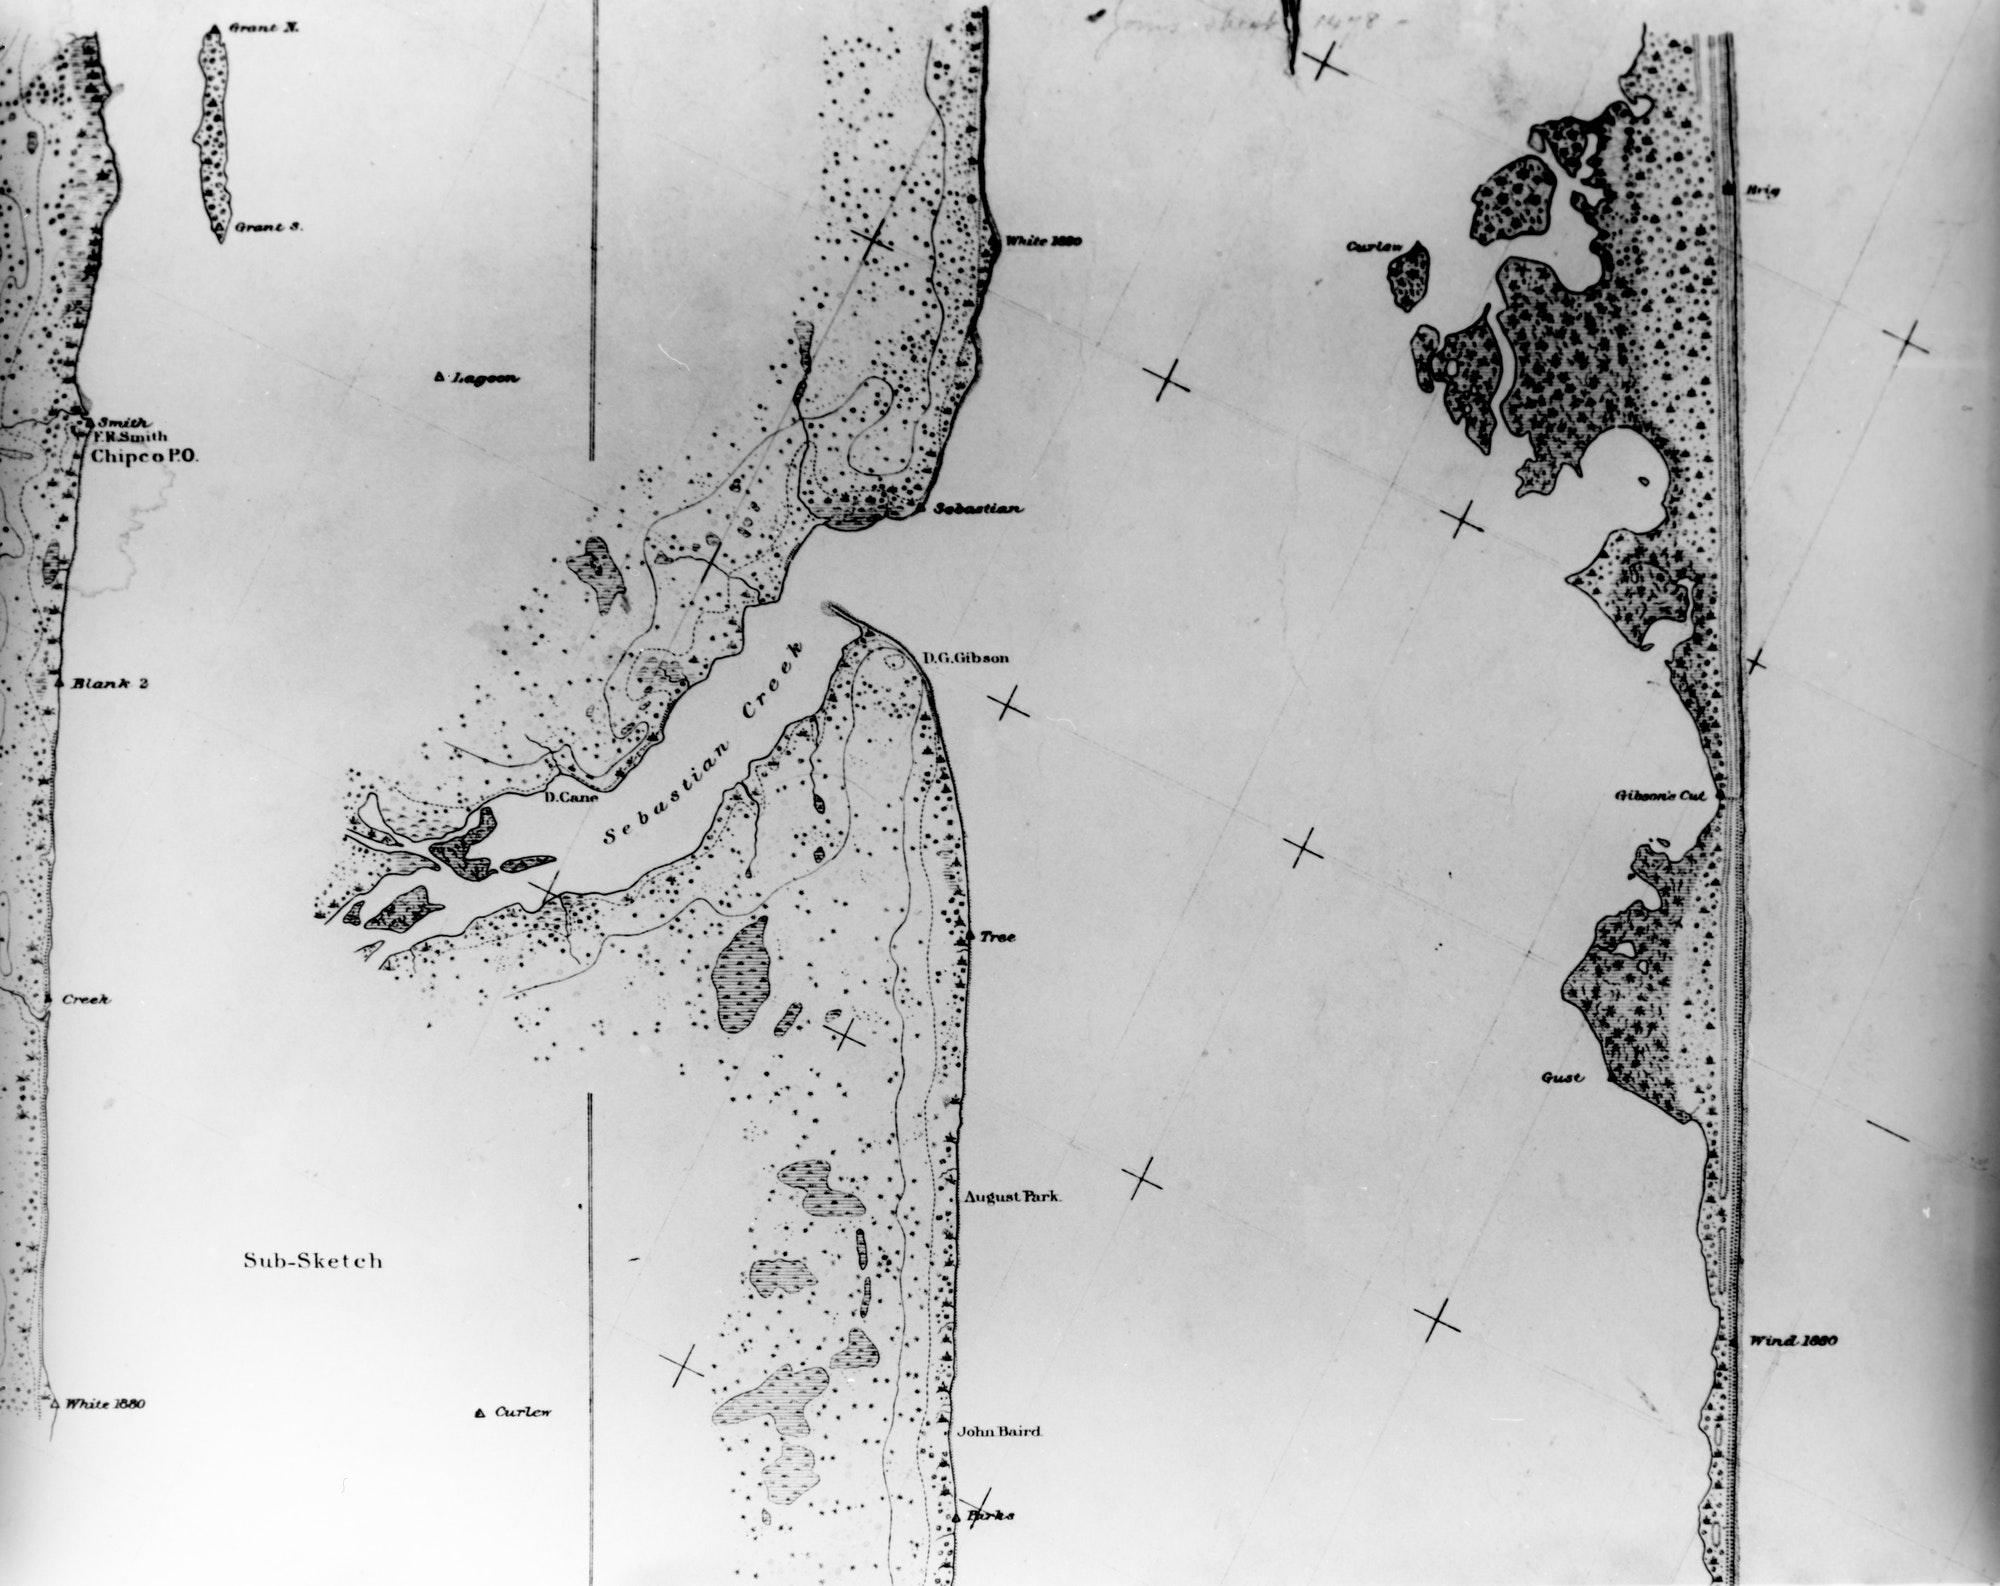 Hand-drawn U.S. Geodetic Survey Map 1880-1881 showing Sebastian Creek, the lagoon and the barrier island